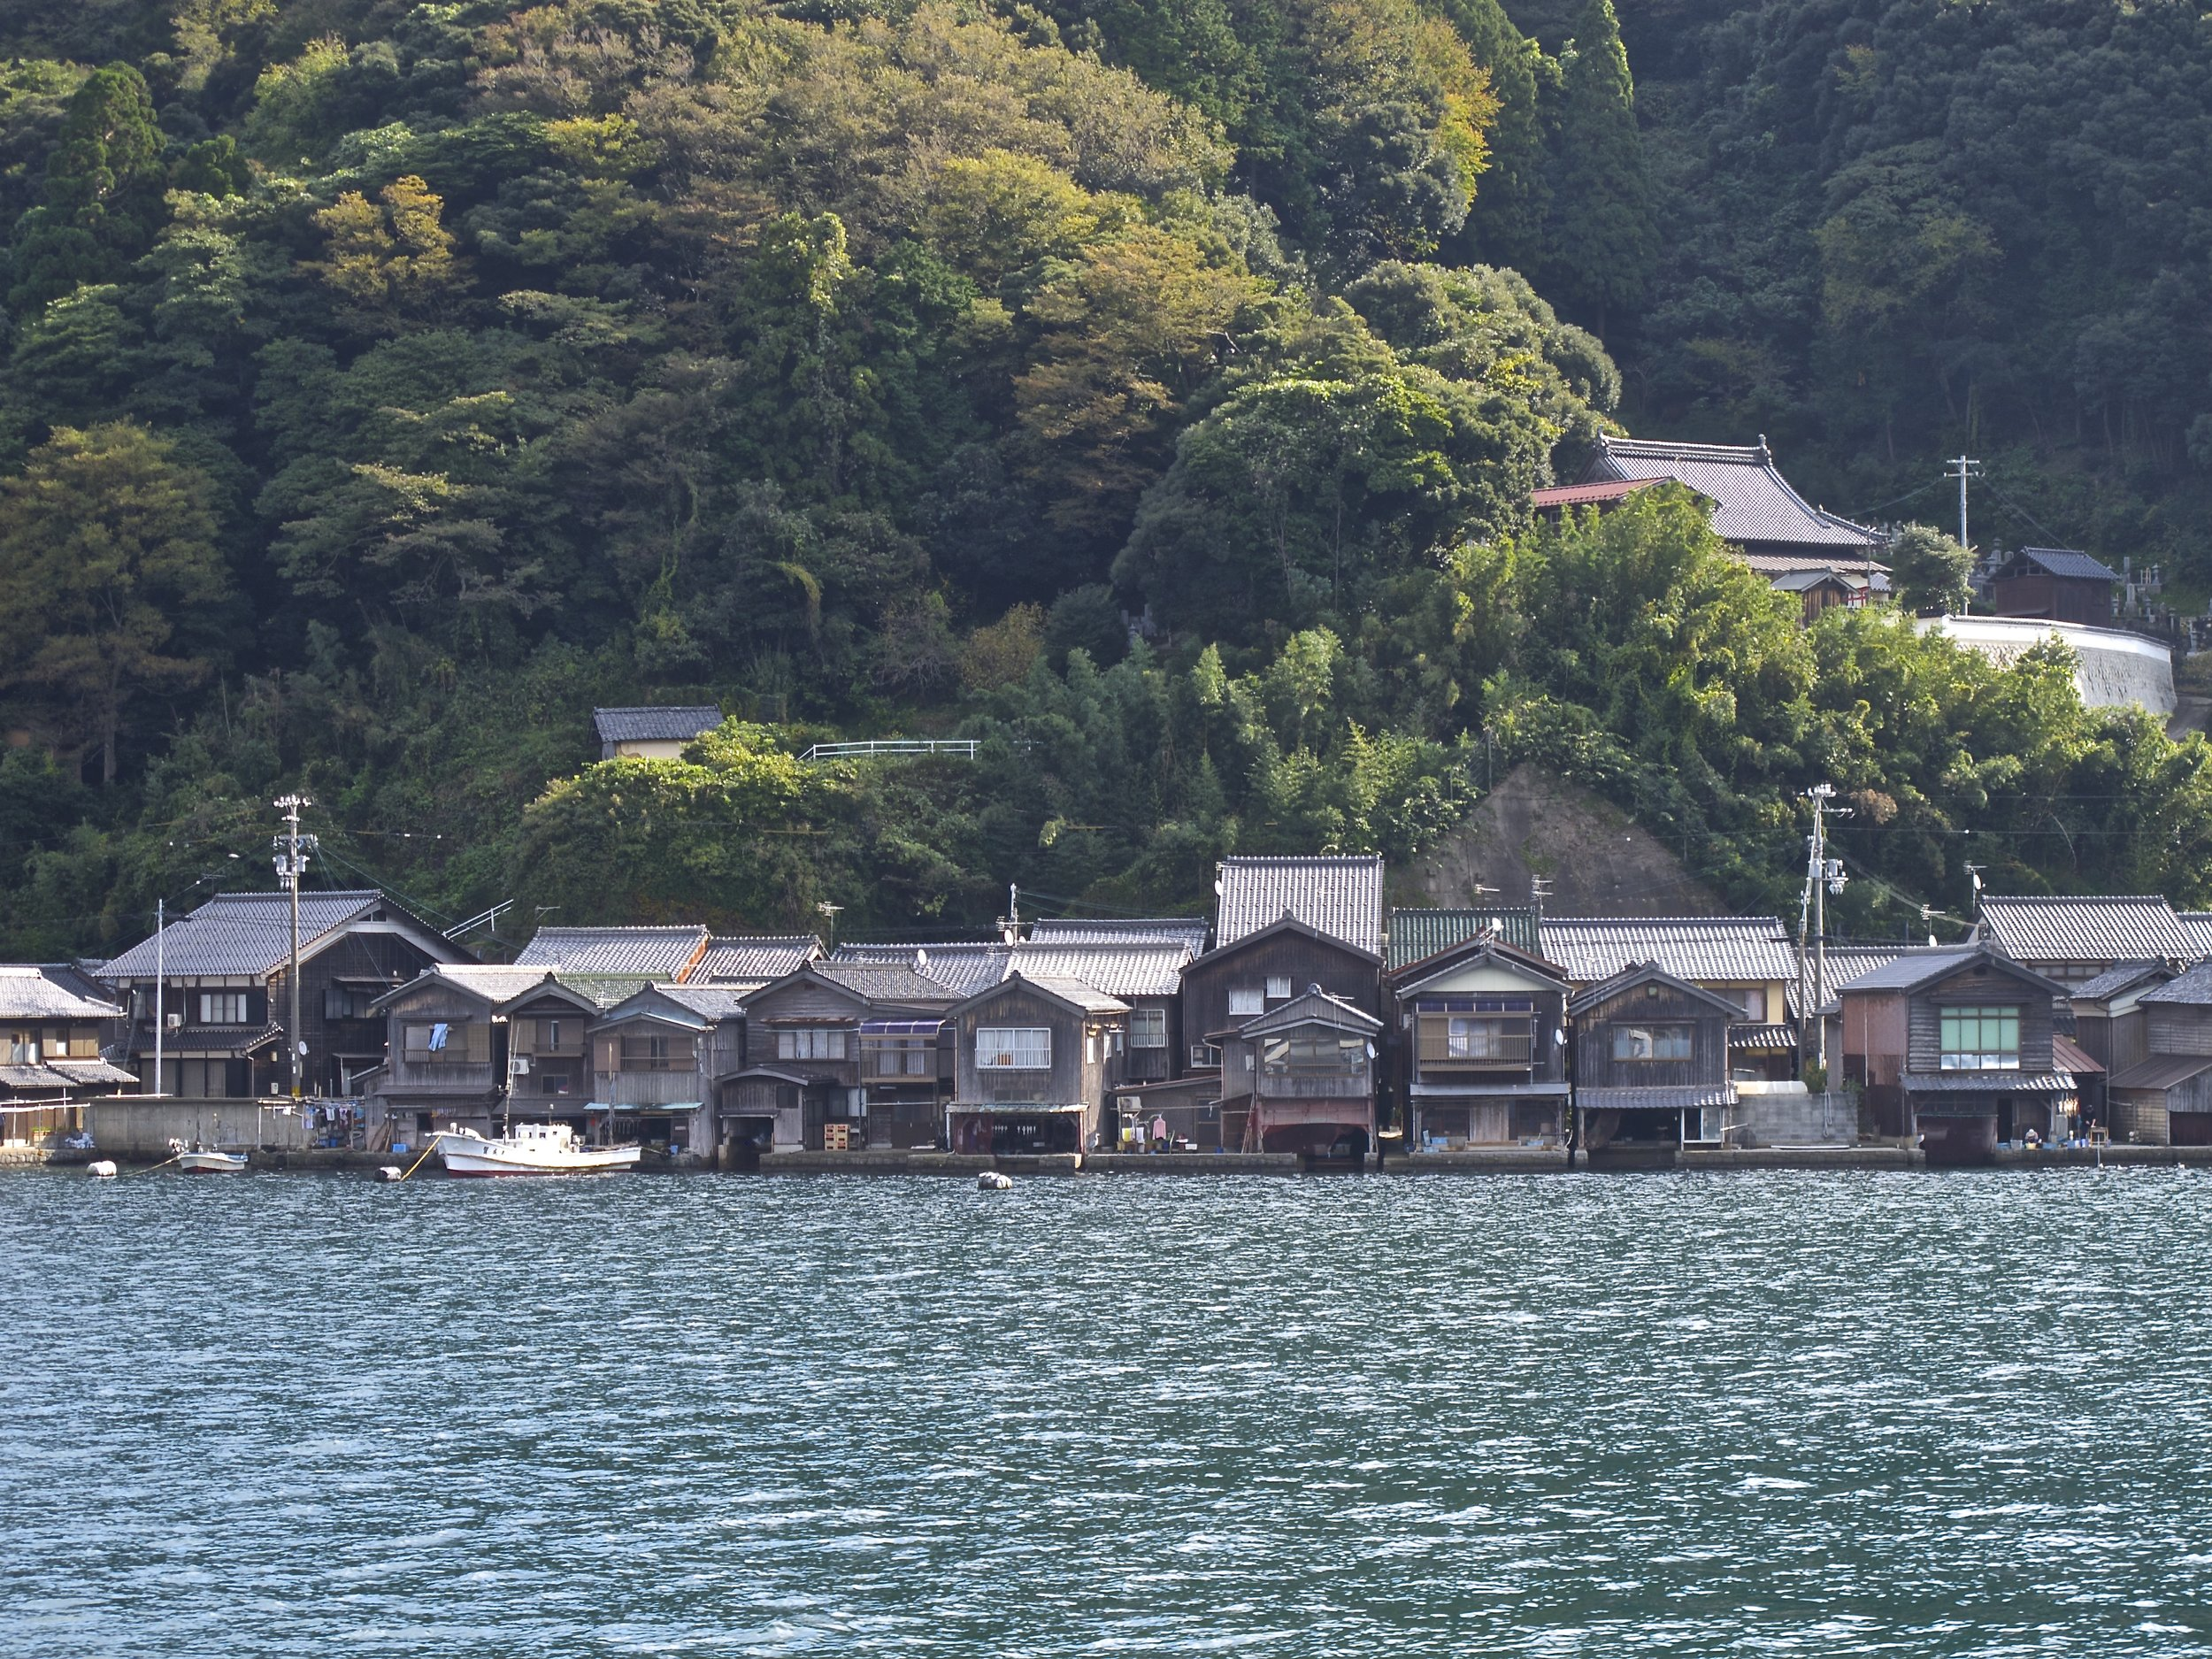 The  funaya  of Ine seen from the water. In the past, only the village's Shinto shrines and Buddhist temples, like the one pictured on the hill on the right, were built into the sides of the surrounding mountains because the mountains were considered sacred.